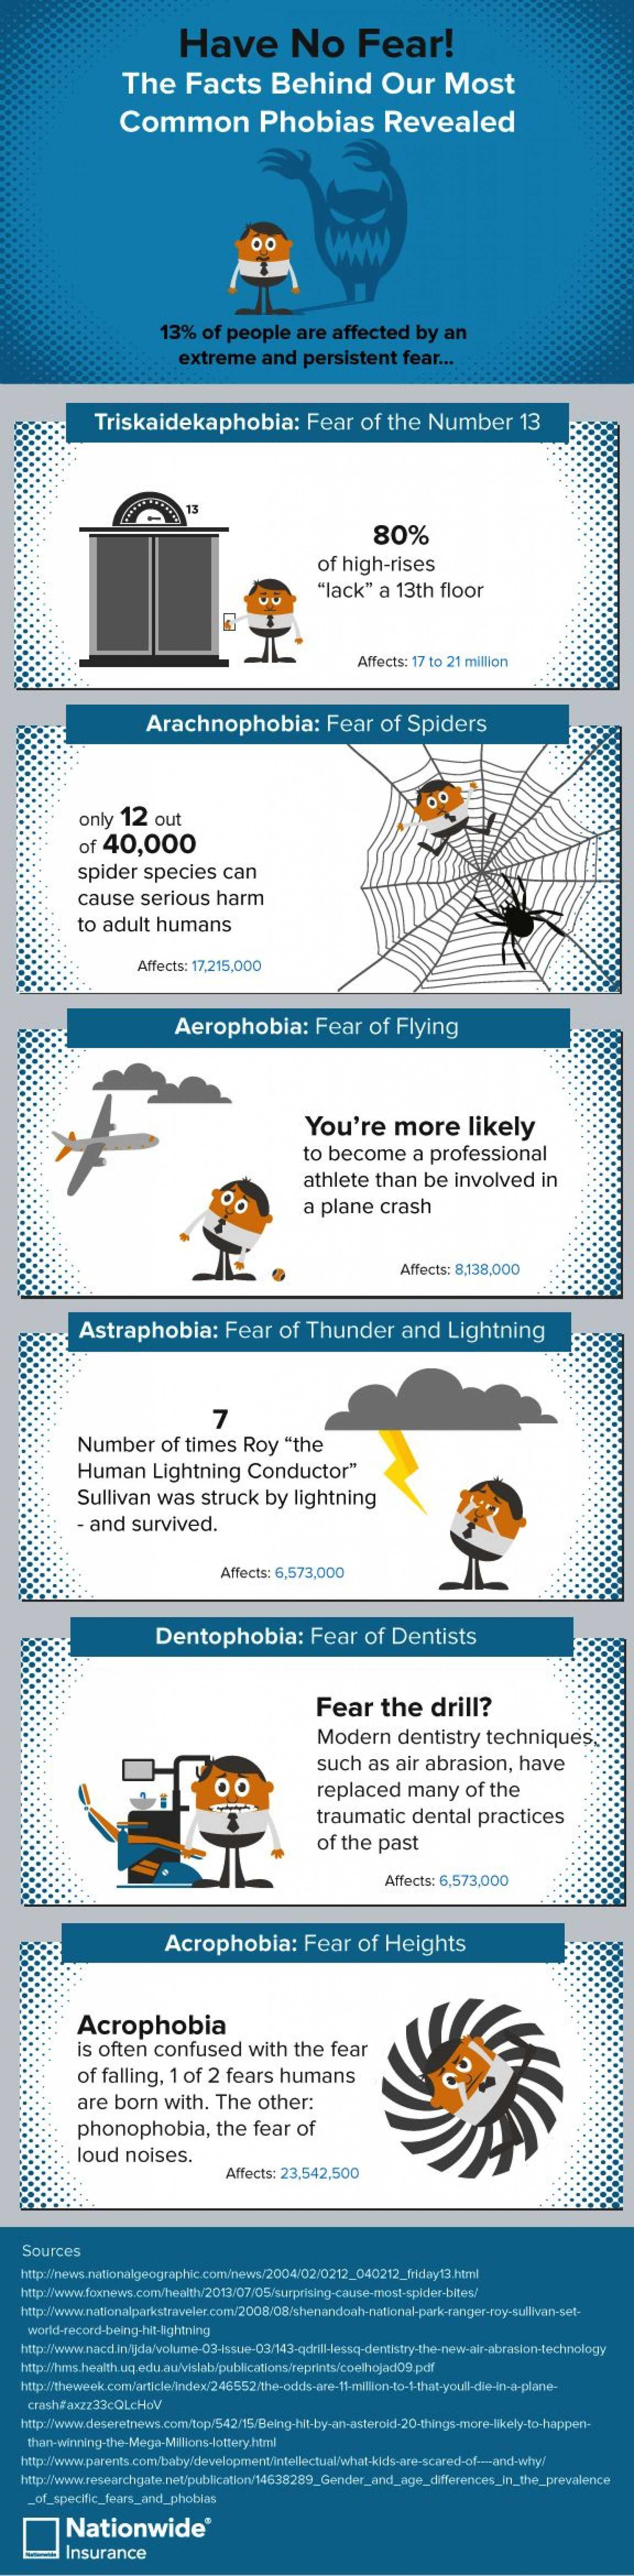 The Facts Behind Our Most Common Phobias Revealed